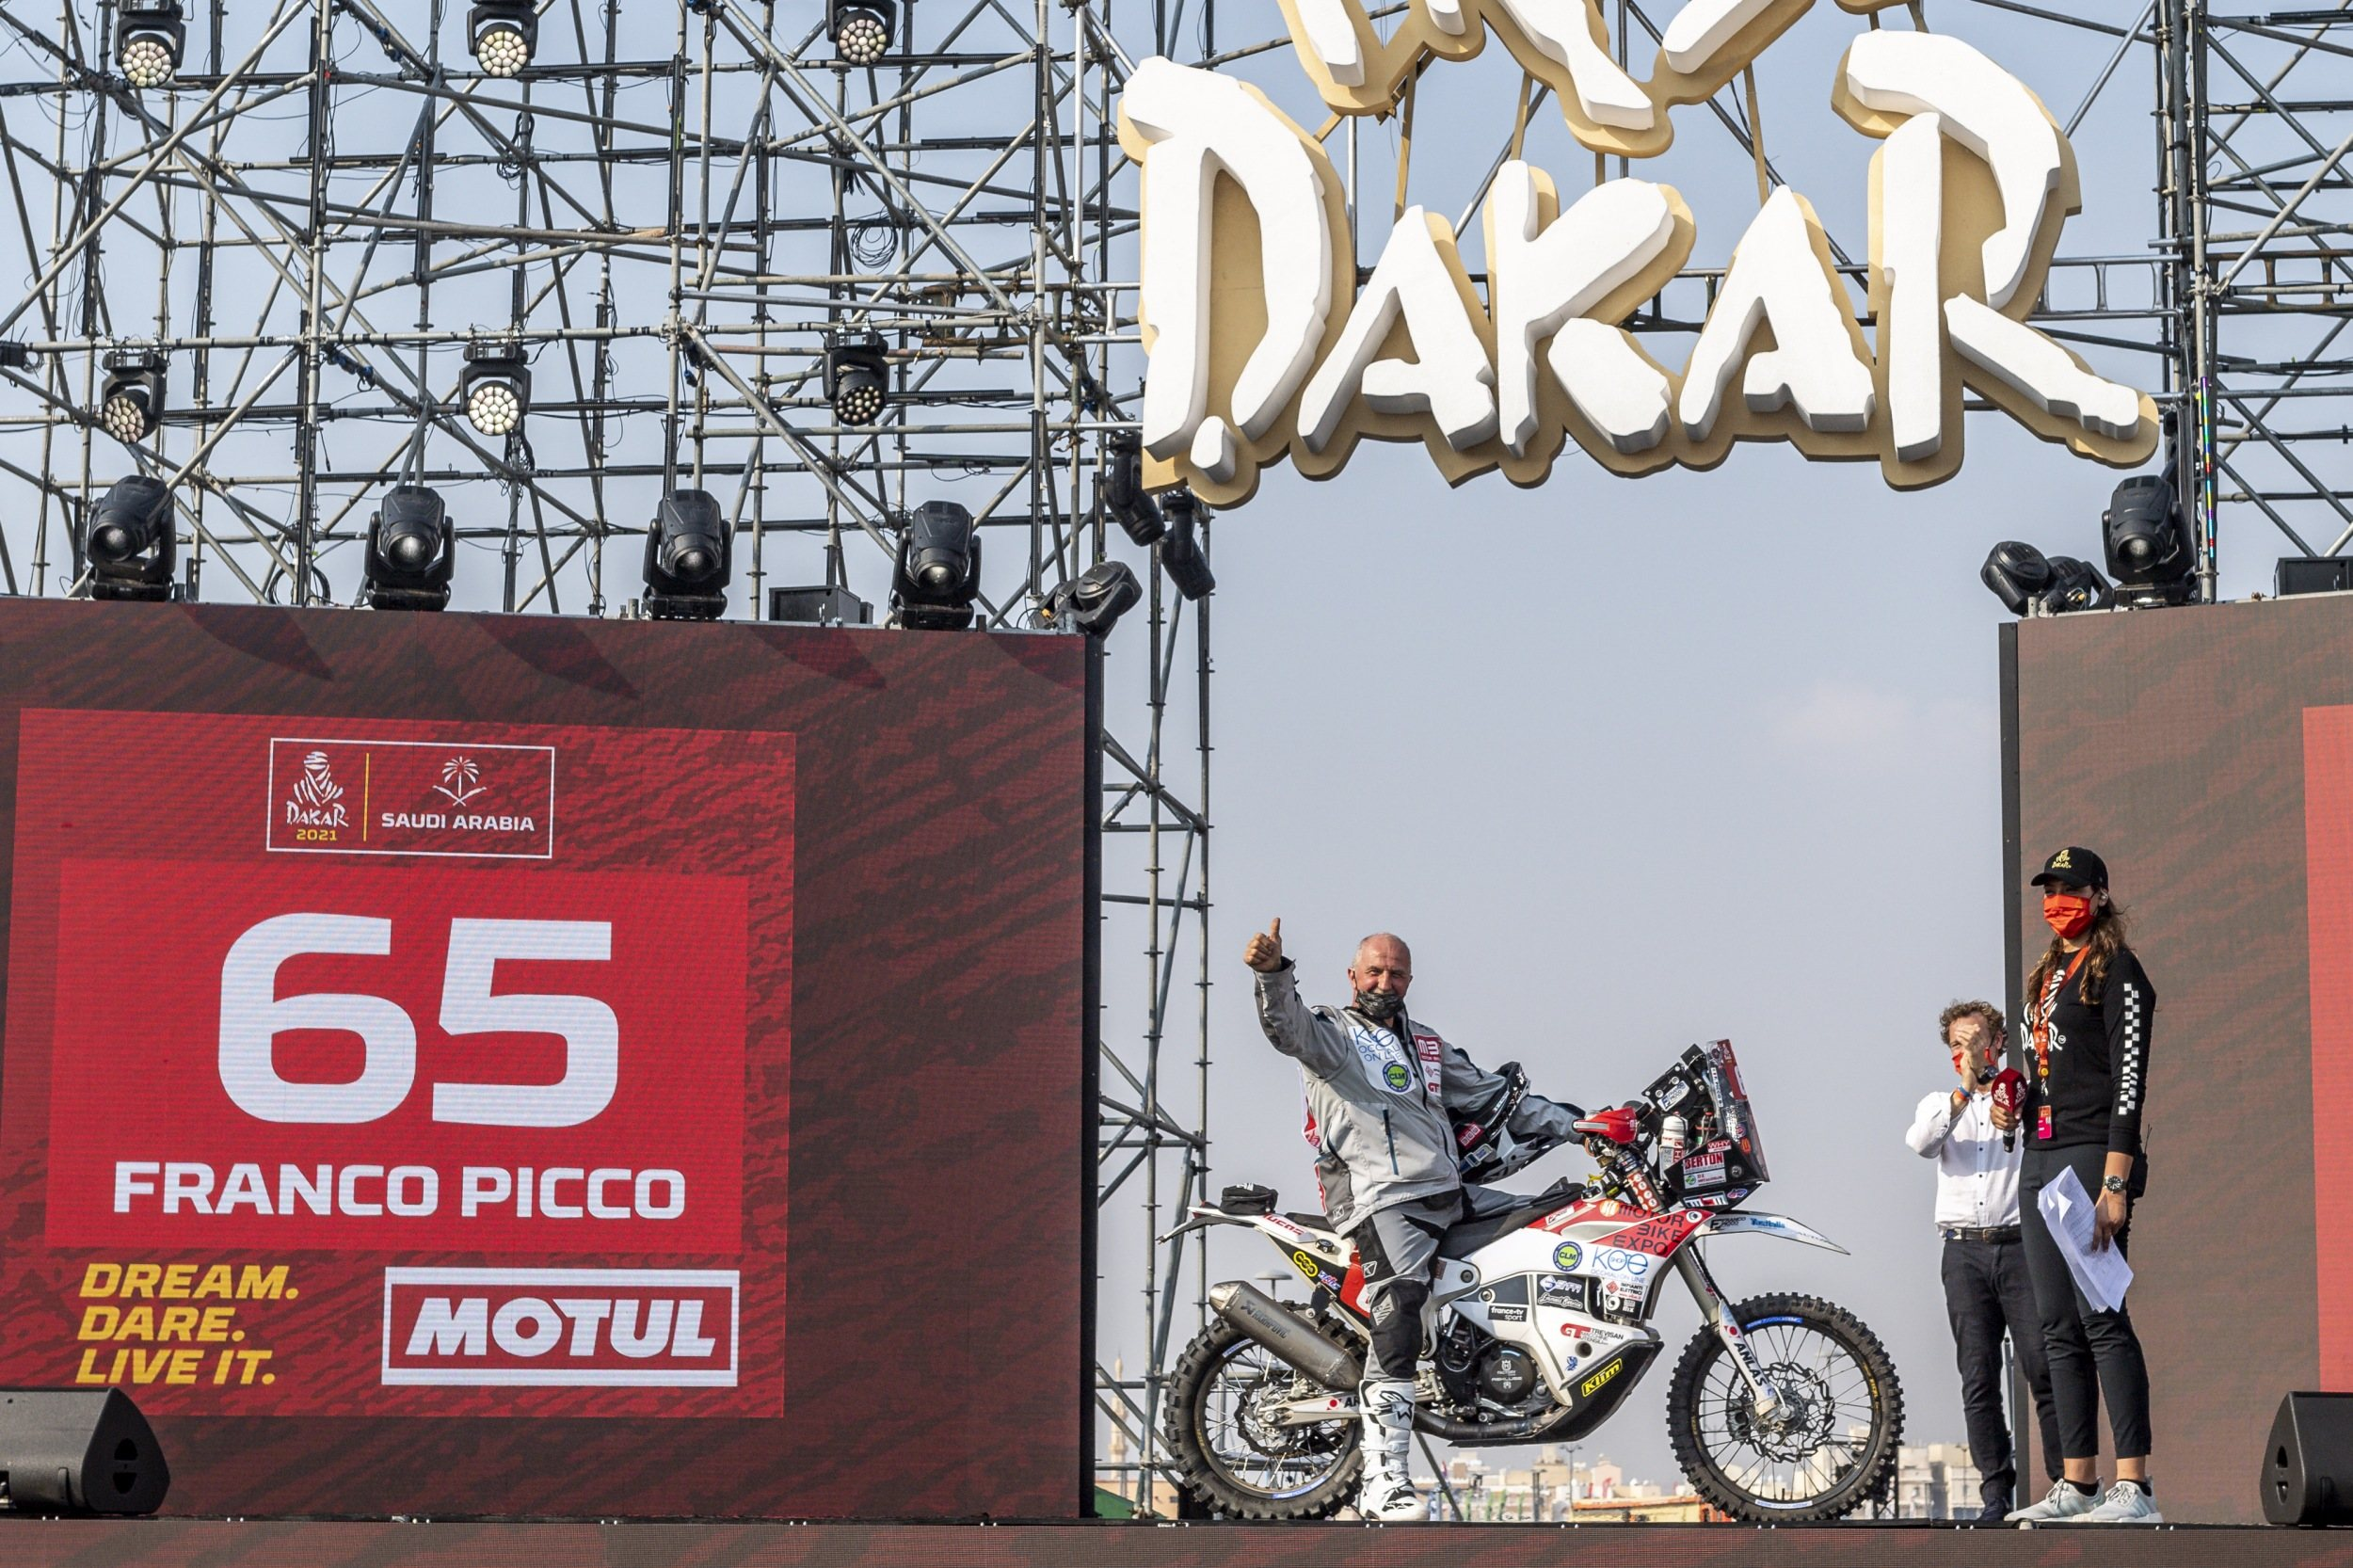 BACK TO DAKAR RACE